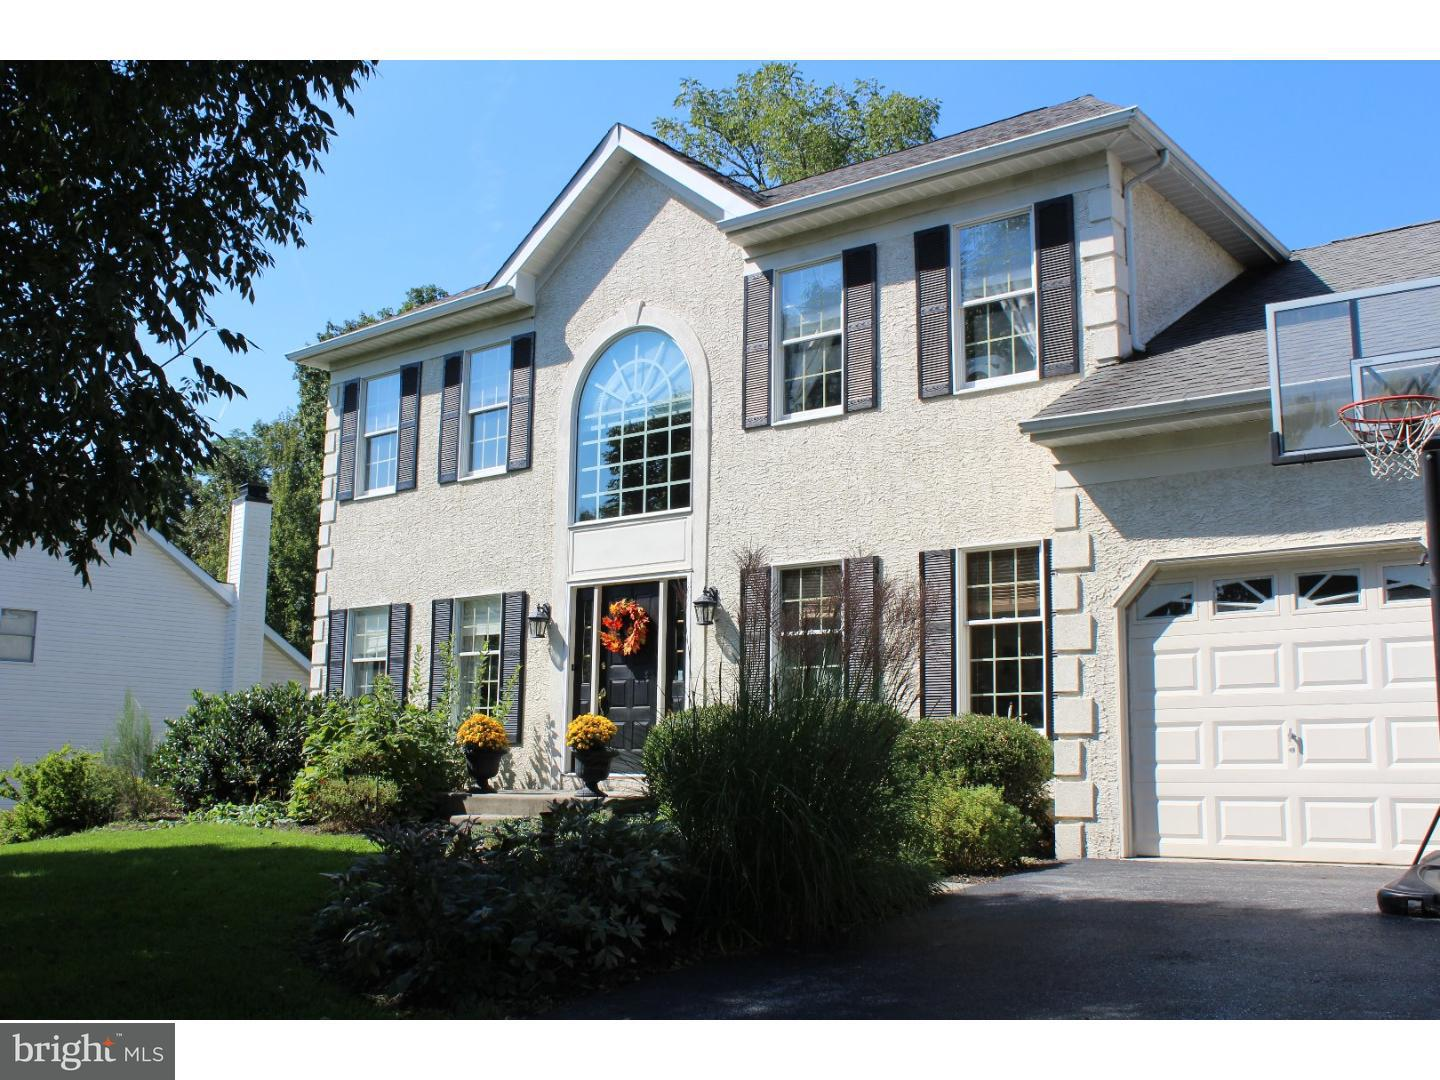 849 WILLIAMSBURG BLVD, DOWNINGTOWN - Listed at $509,900, DOWNINGTOWN